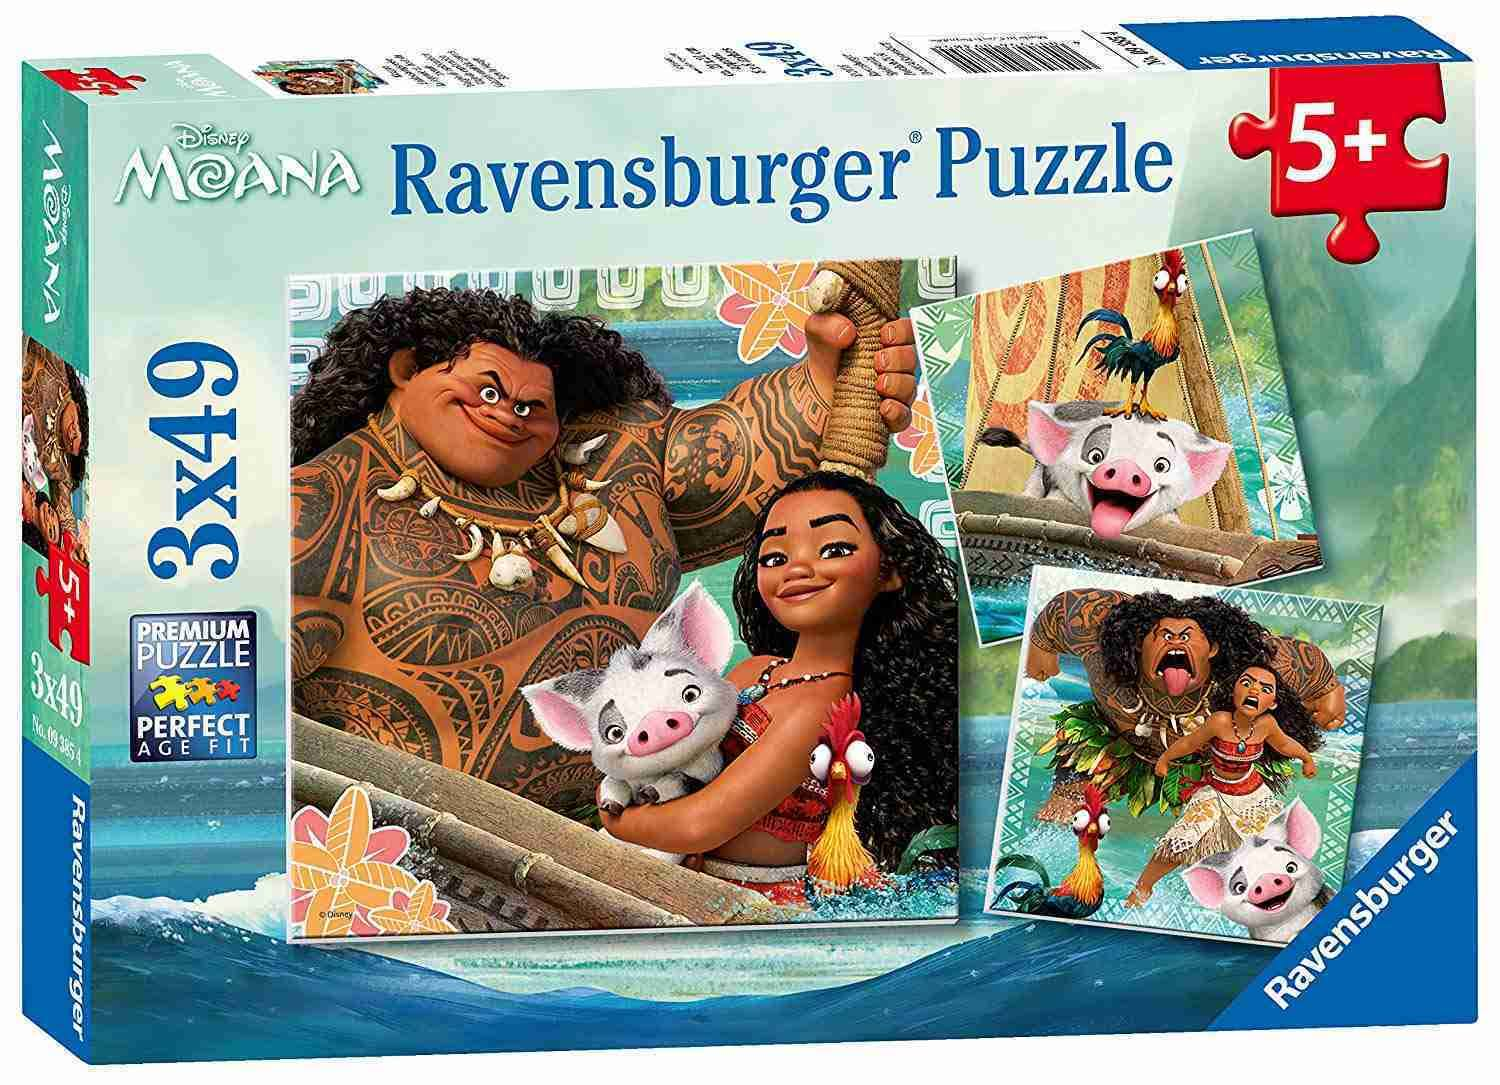 Ravensburger Disney Moana Jigsaw Puzzle - Adventure, 3 x 49pcs